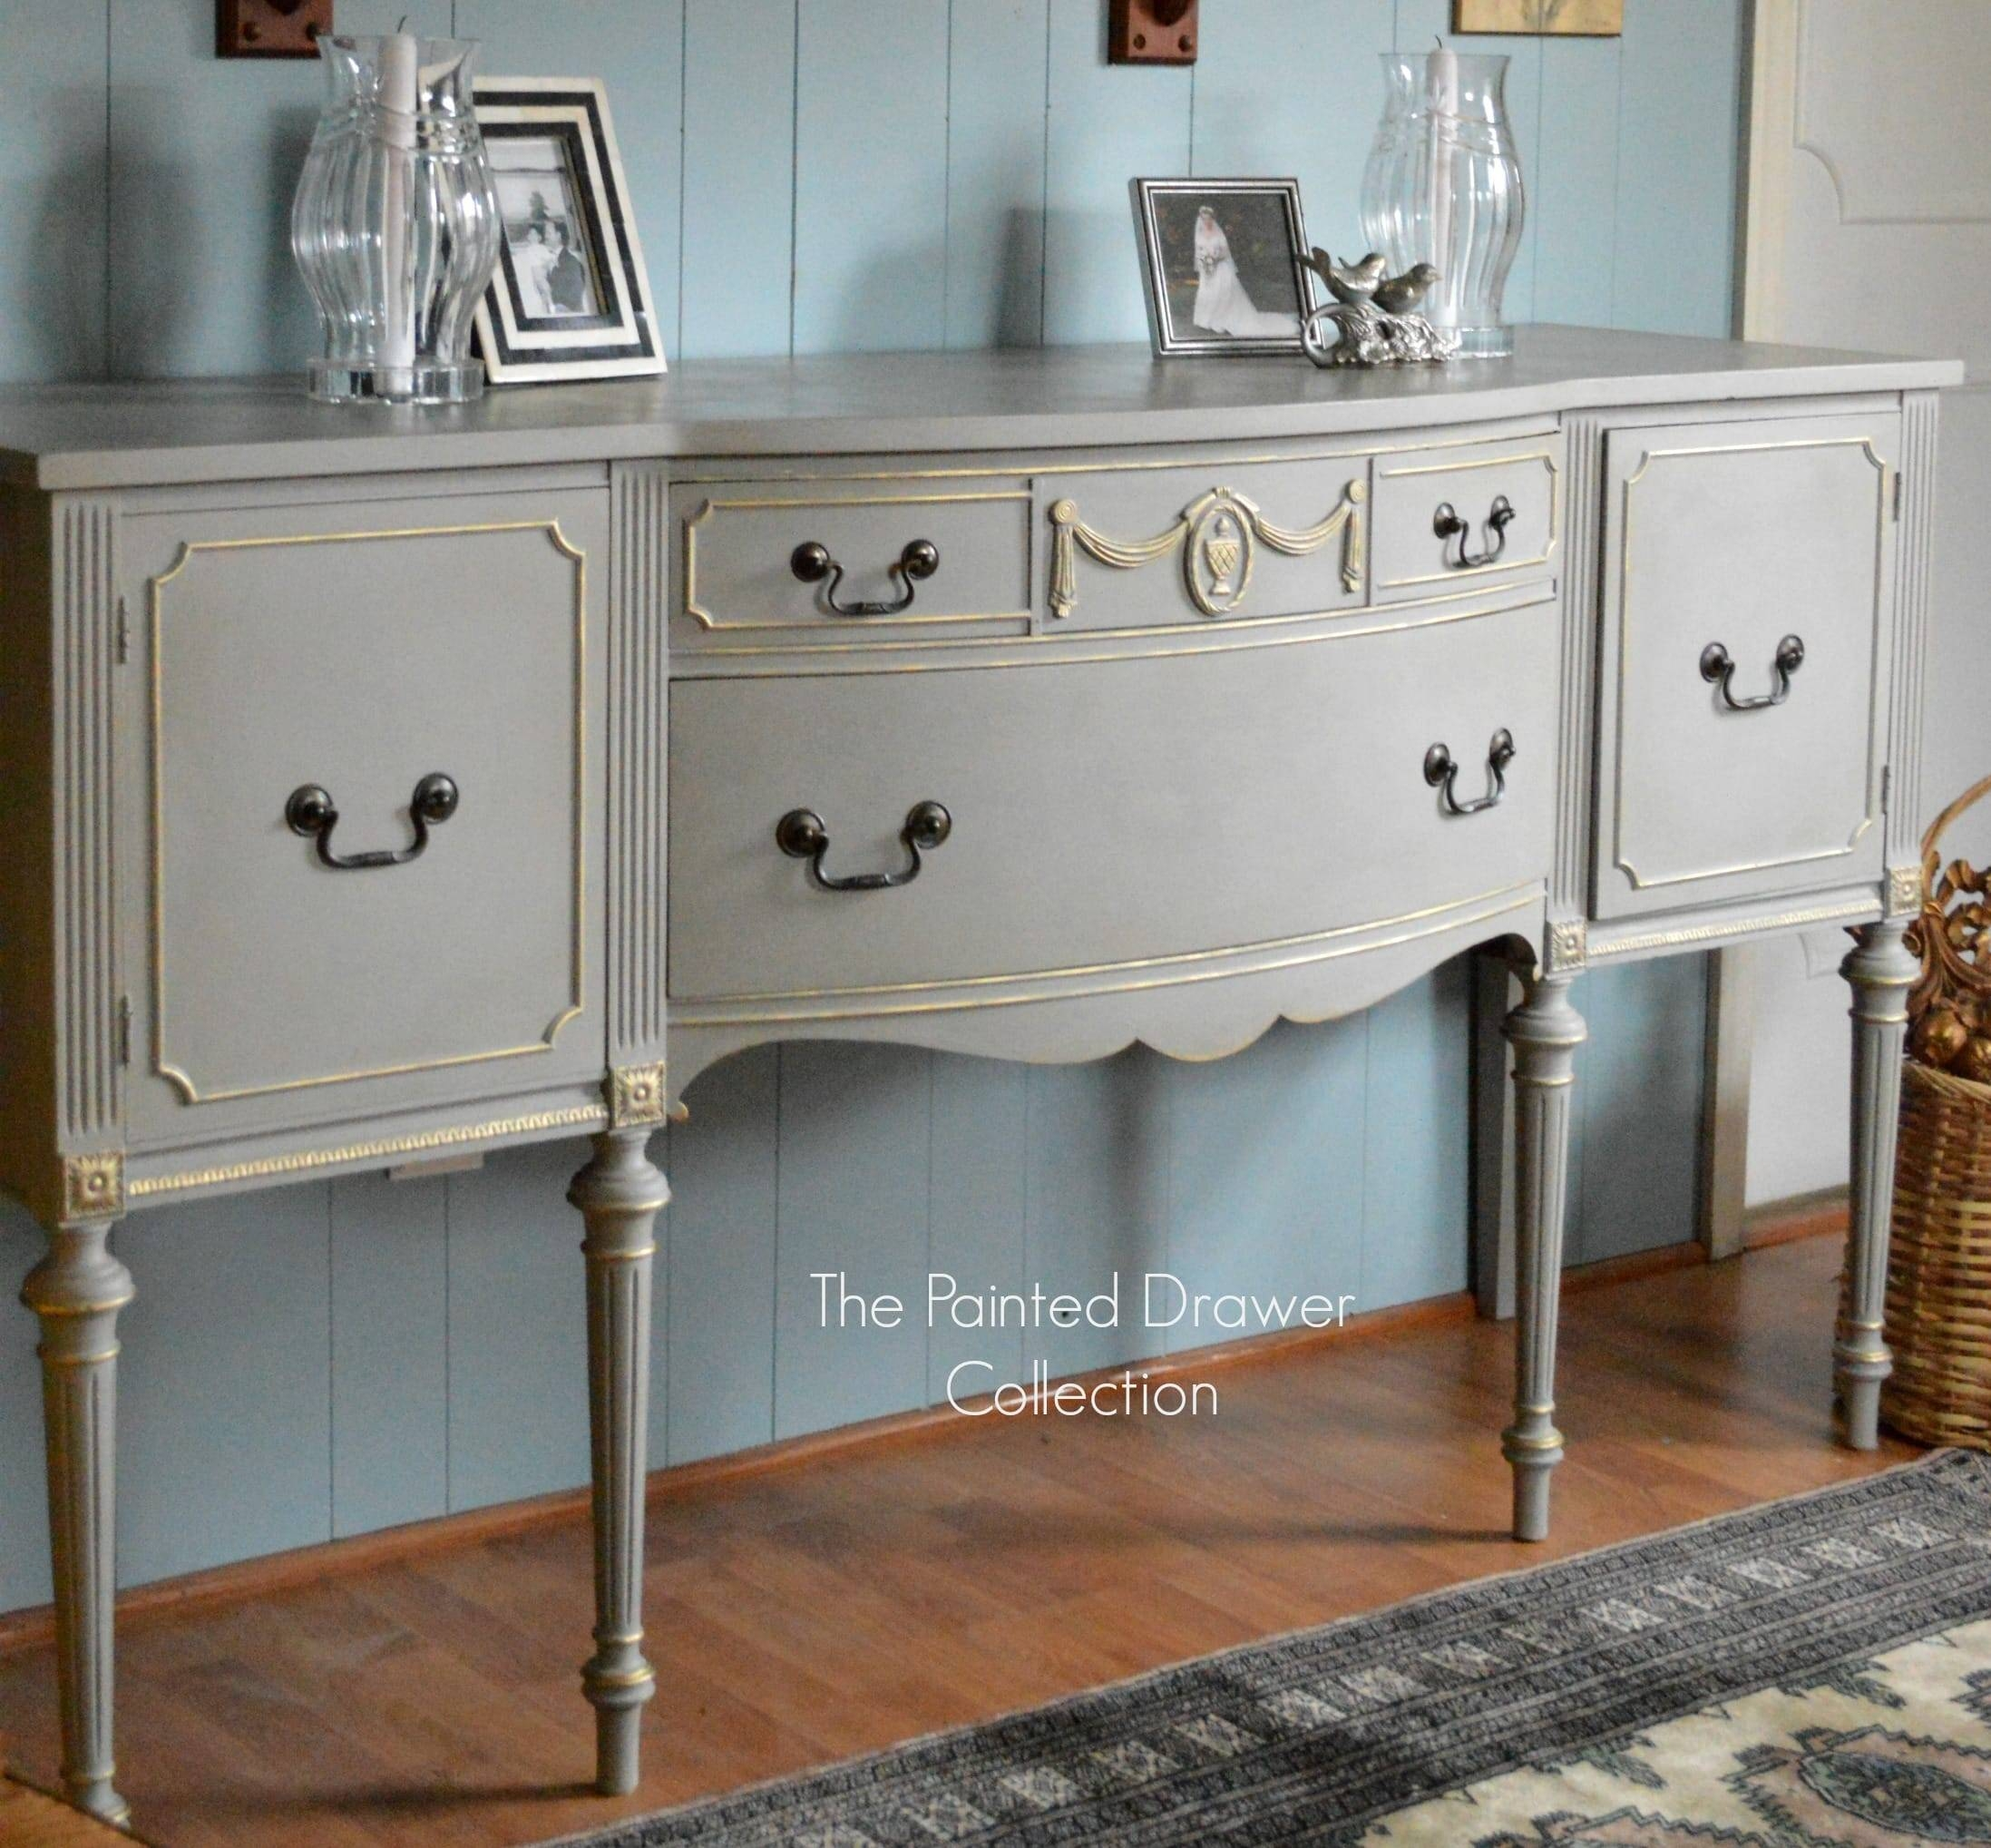 French Linen And Gold Sideboard Transformation – Before And After – Within Annie Sloan Painted Sideboards (View 4 of 15)